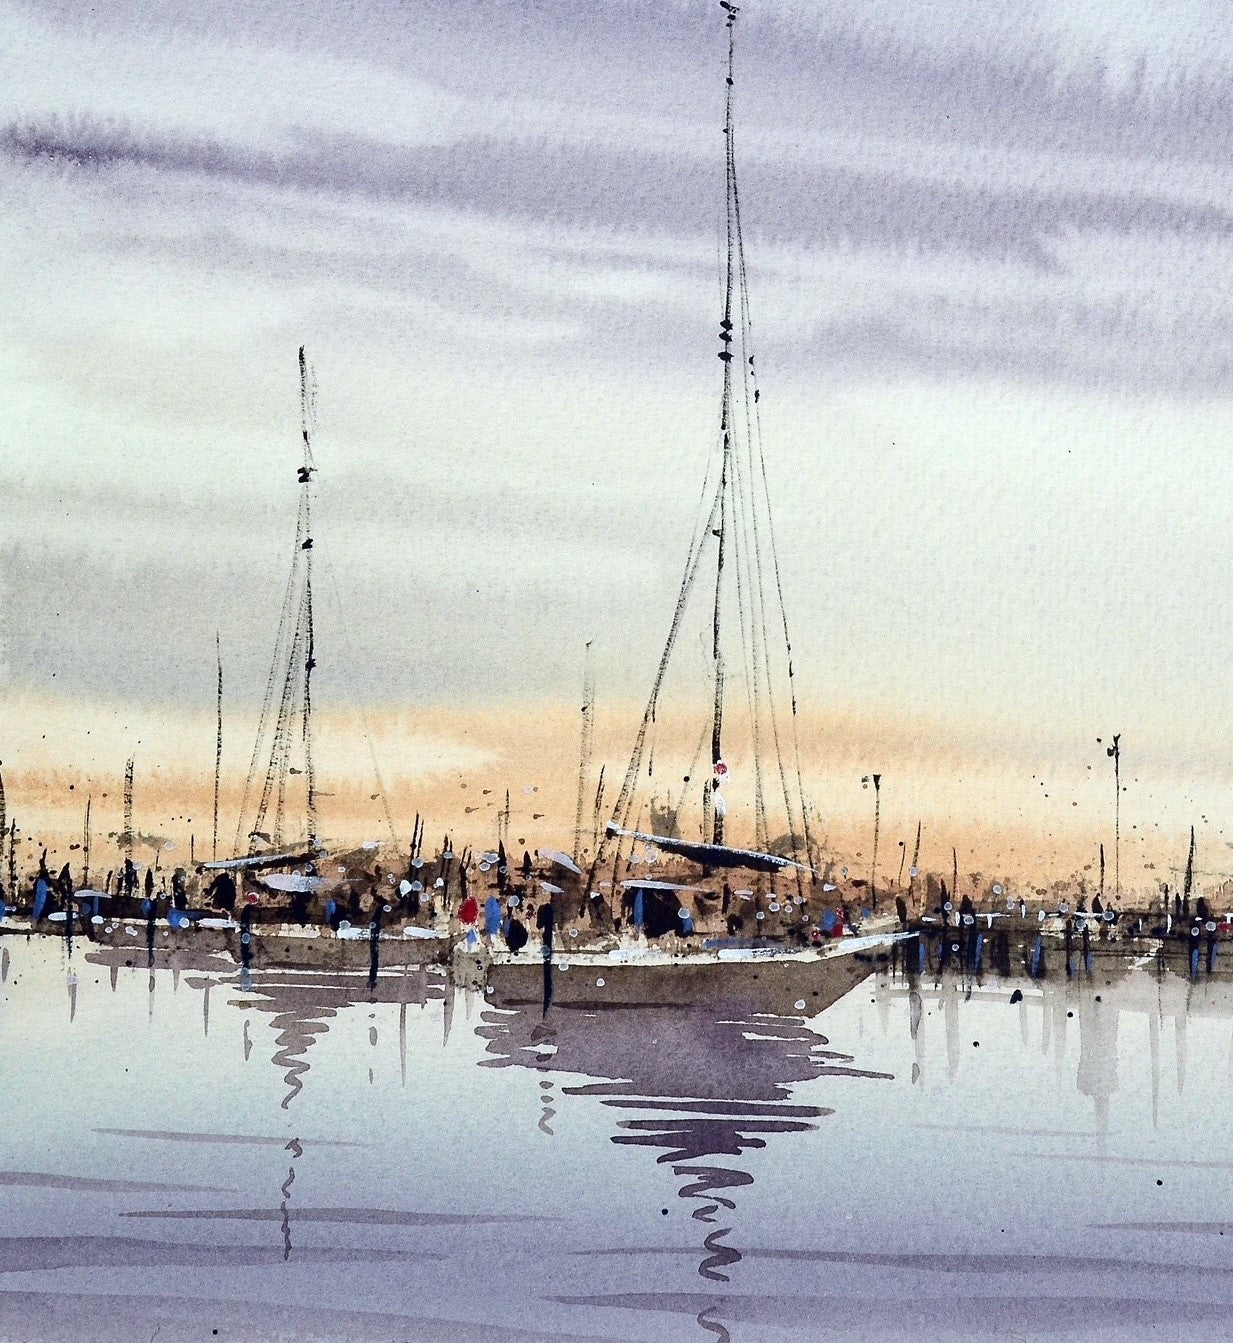 files/6._A_Trip_to_Port_Albert_VIC_28cm_x_38cm.jpg